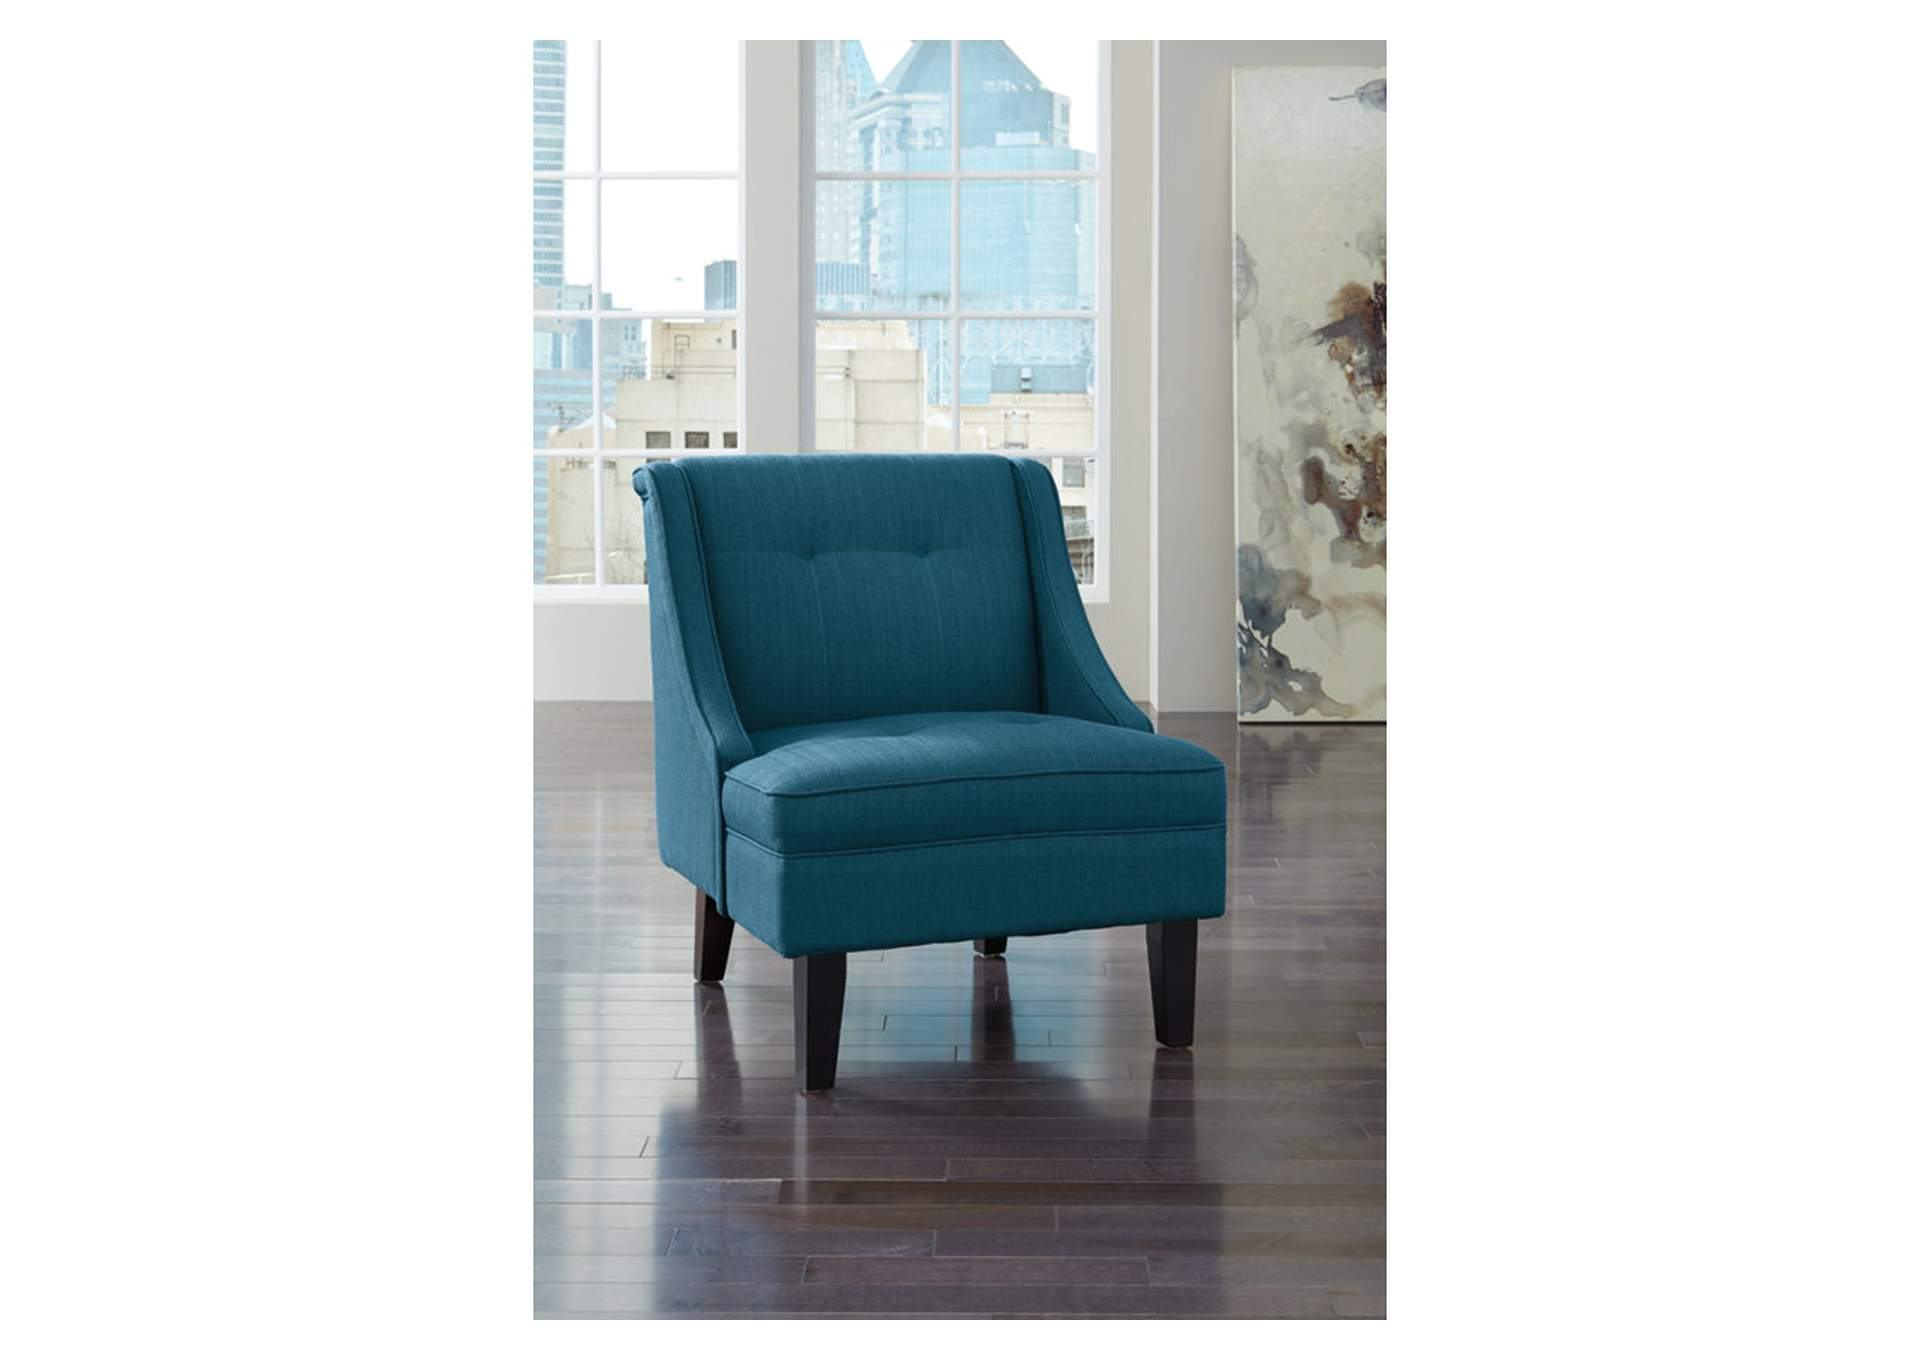 Davis Home Furniture Asheville Nc Clarinda Blue Accent Chair